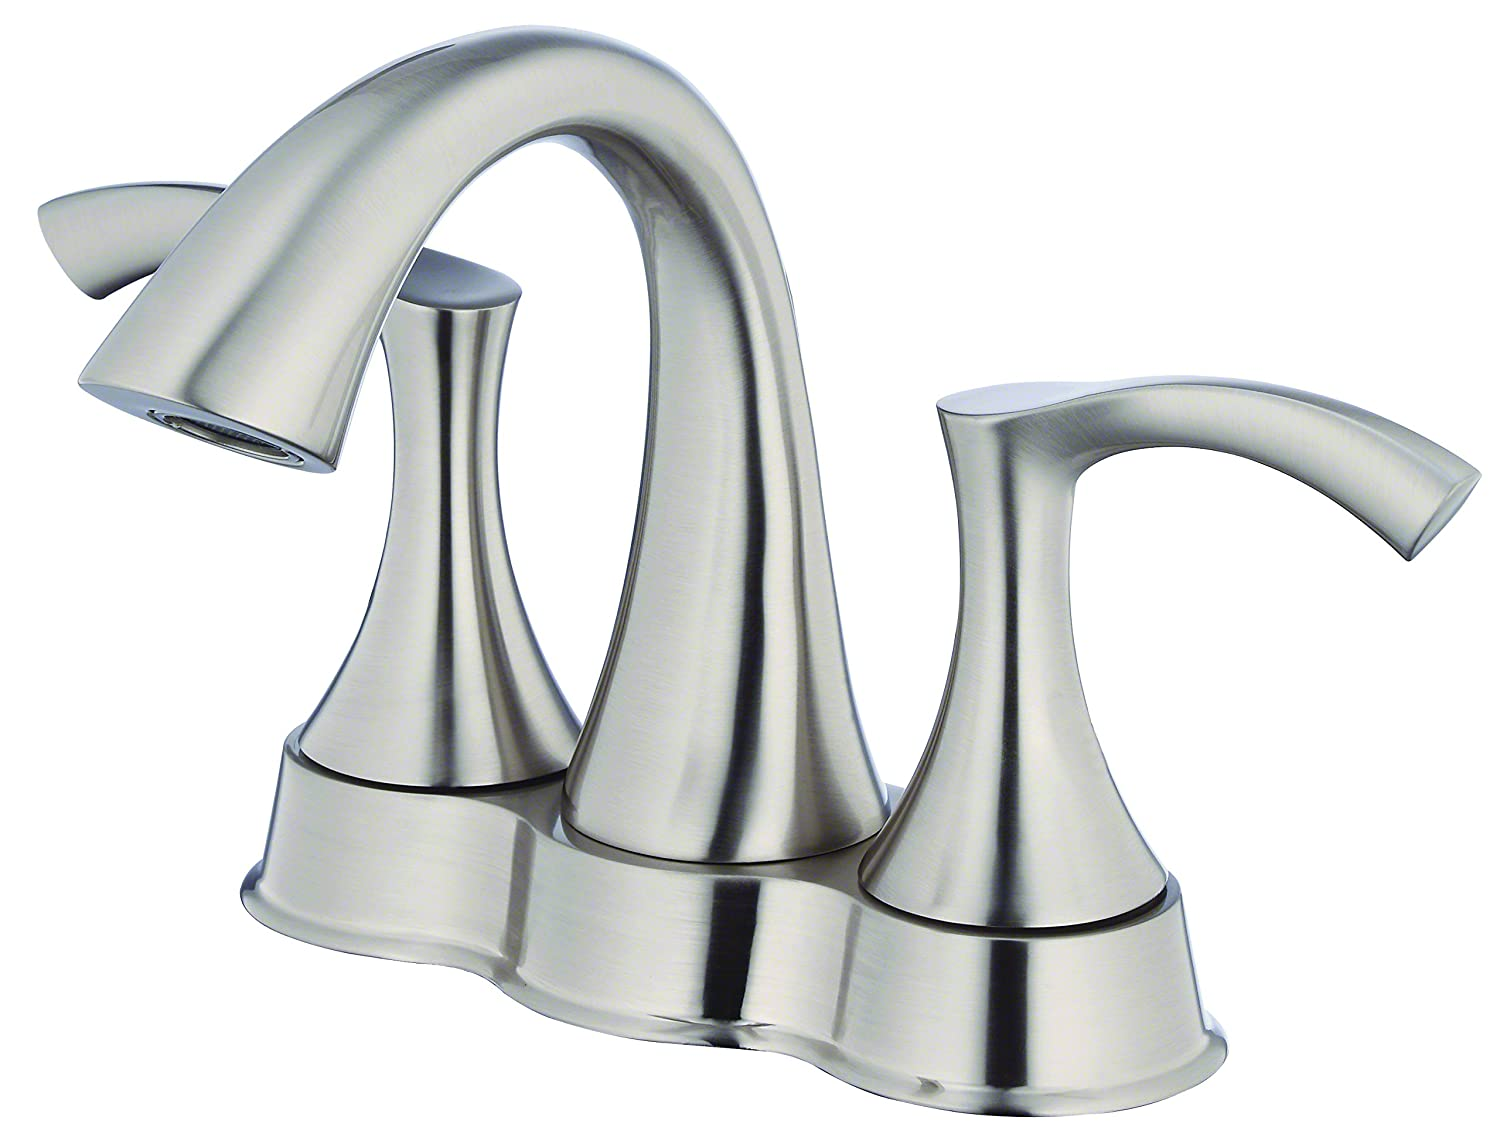 Danze D301022 Antioch Two Handle Centerset Lavatory Faucet, Chrome ...